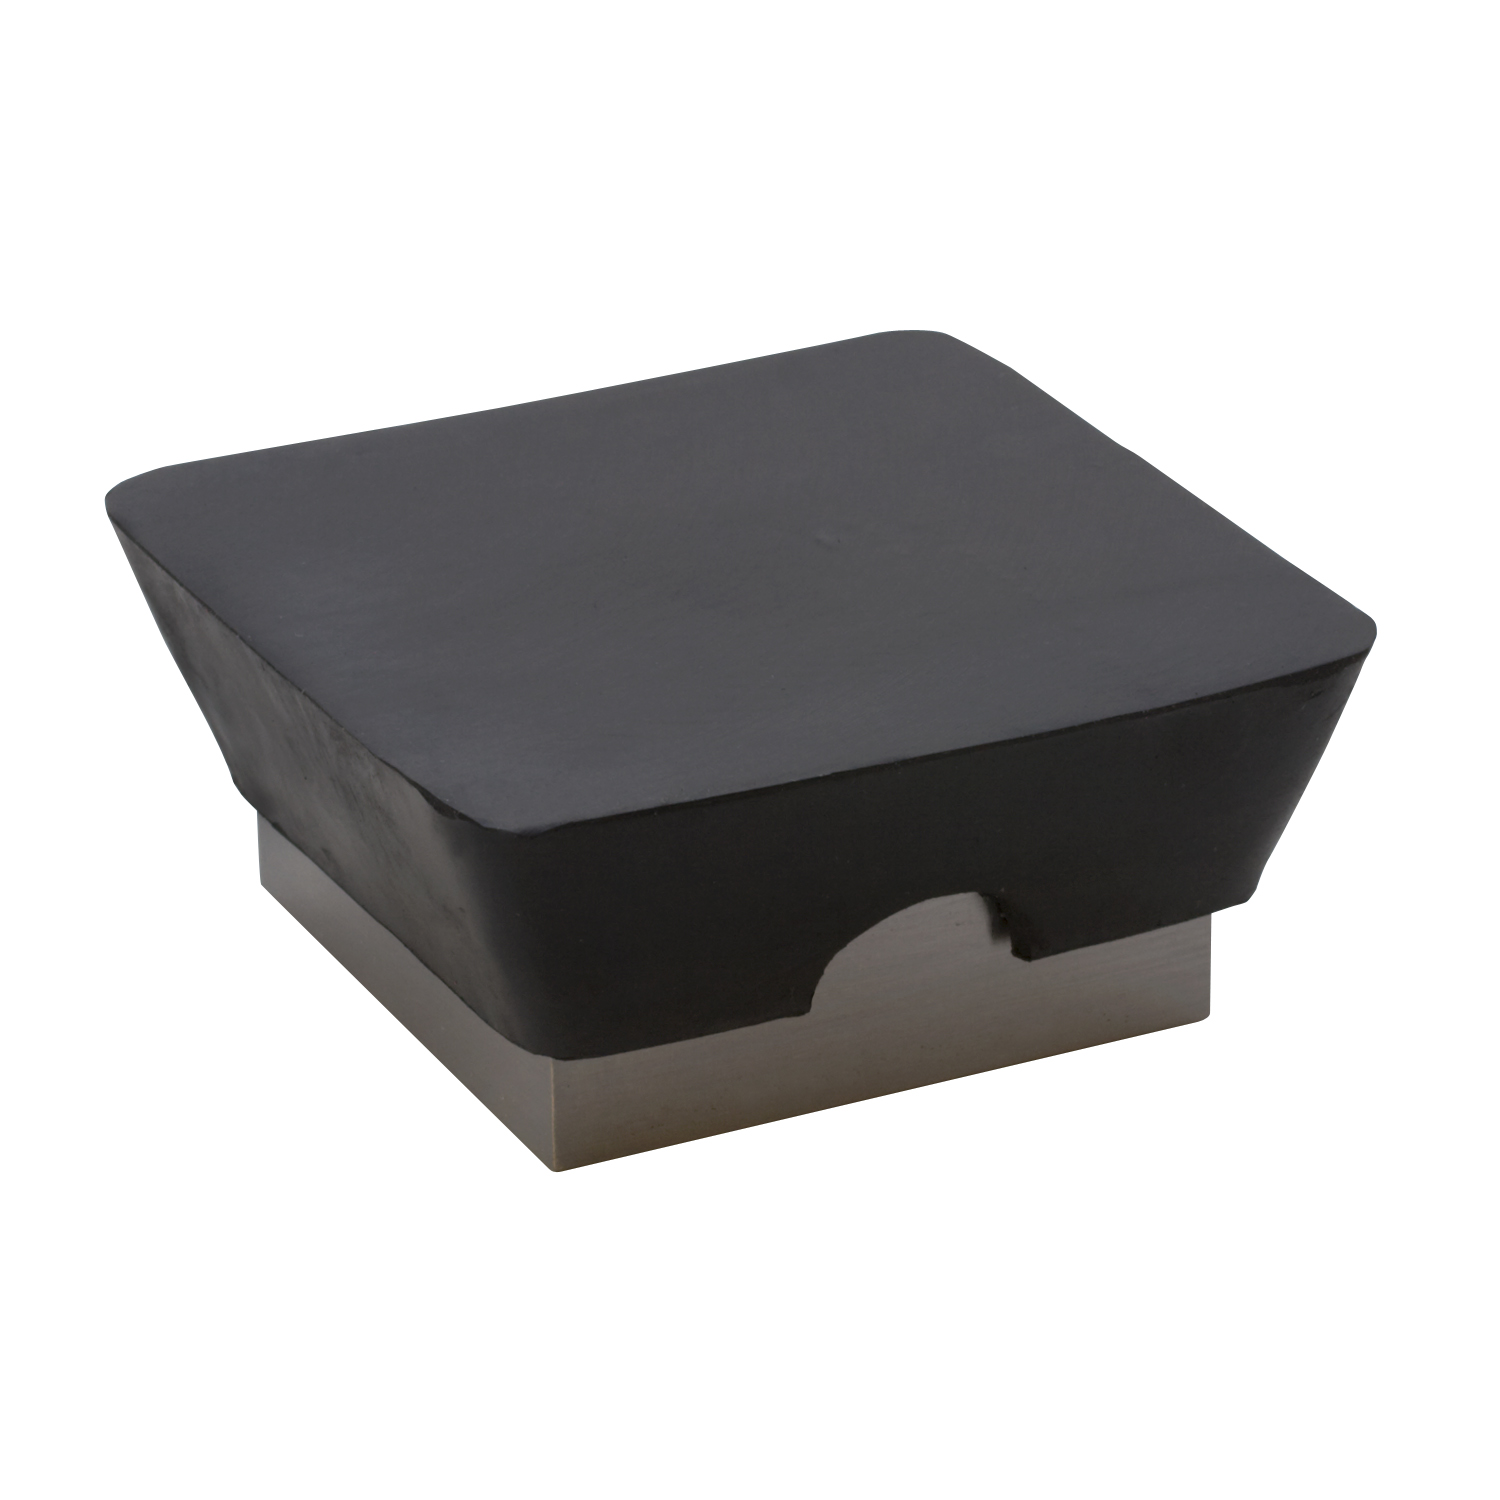 Dap Bench Block Steel And Rubber 2 1 2 Inches